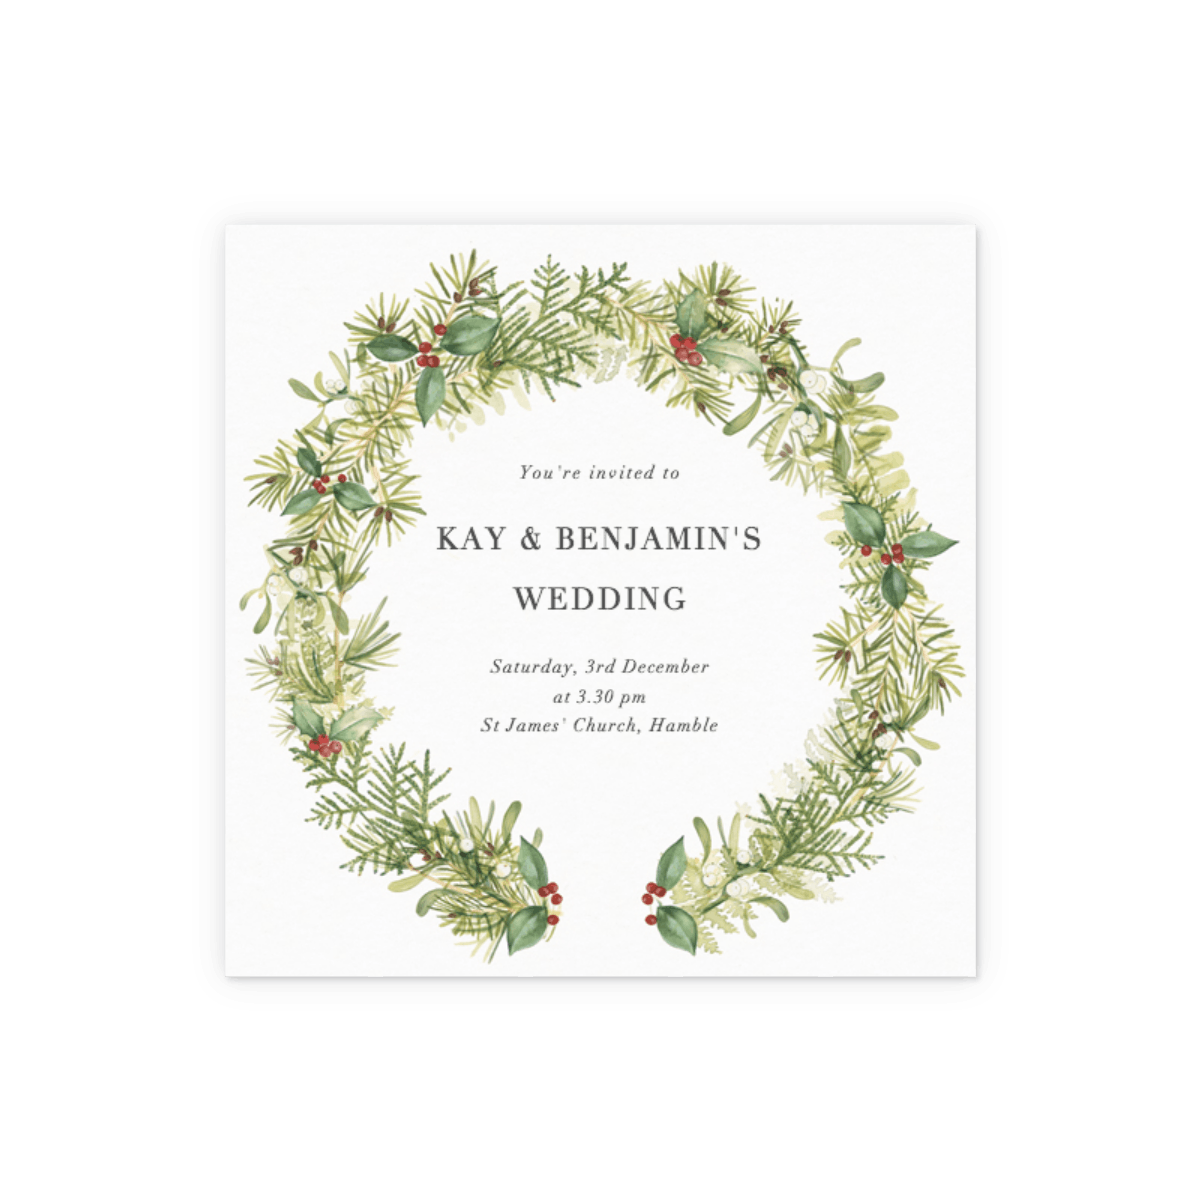 Https%3a%2f%2fwww.papier.com%2fproduct image%2f10262%2f11%2fwinter wreath 2619 front 1542111635.png?ixlib=rb 1.1